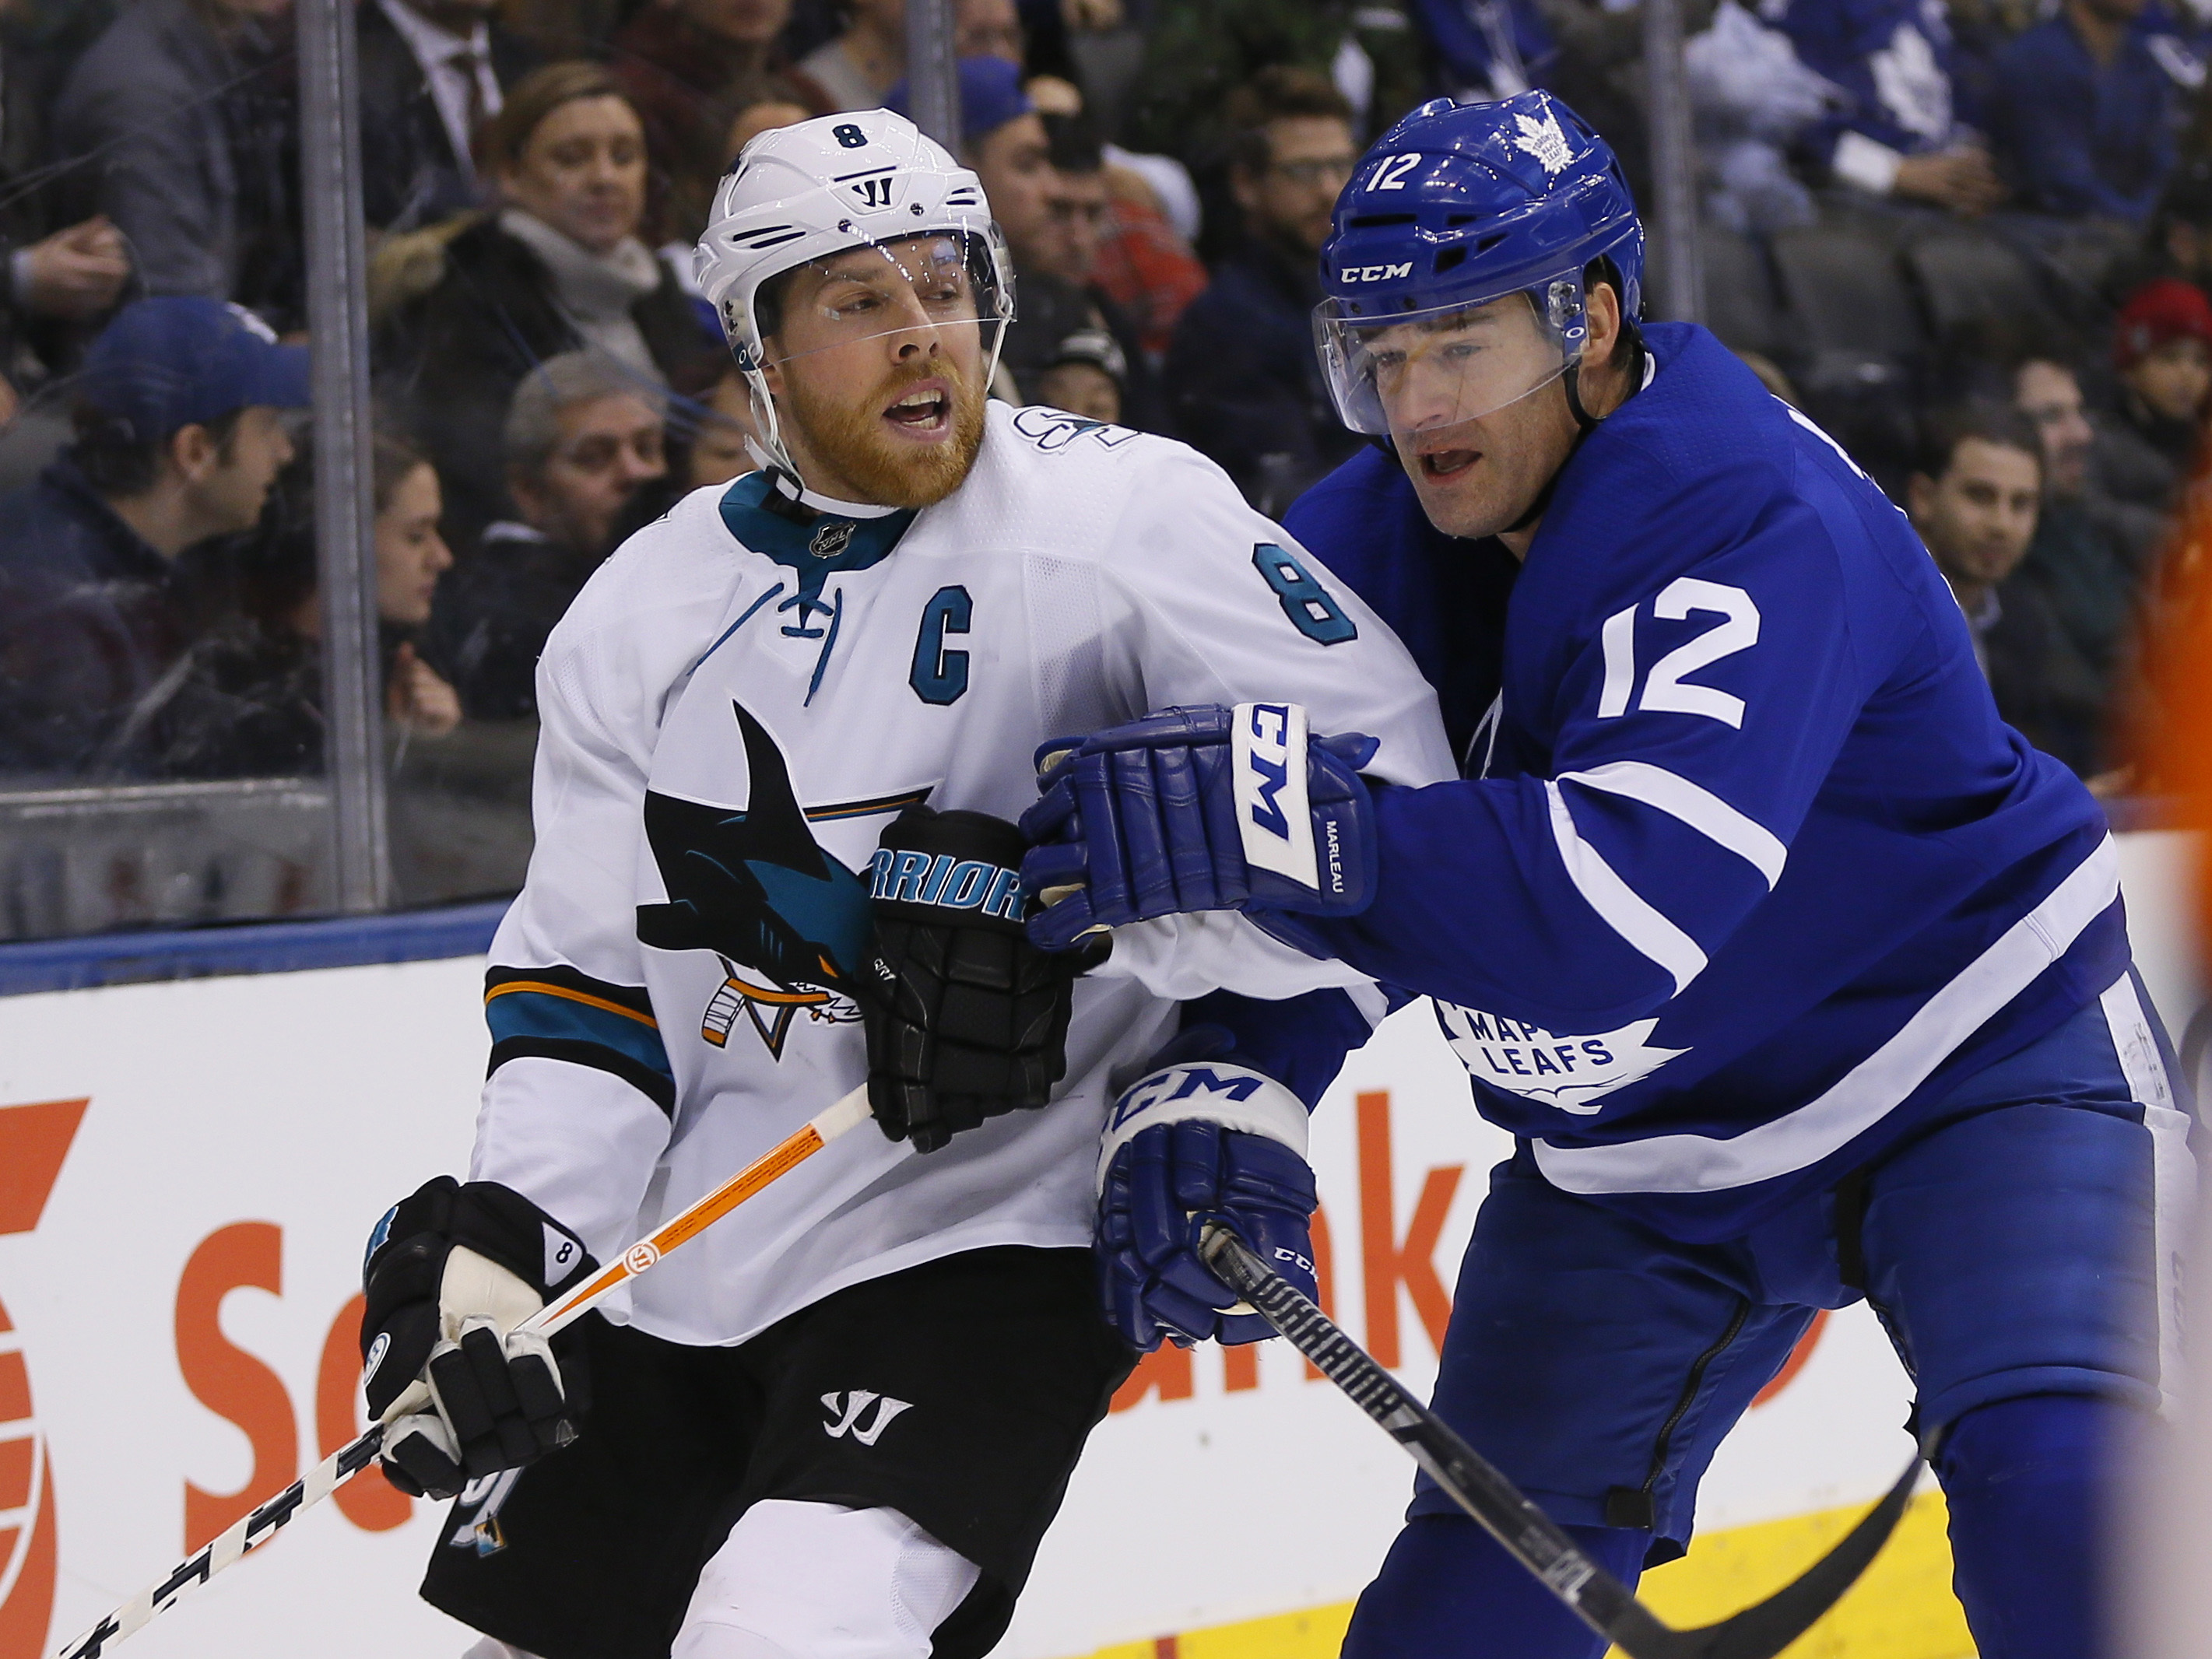 Jan 4, 2018; Toronto, Ontario, CAN; San Jose Sharks forward Joe Pavelski (8) and Toronto Maple Leafs forward Patrick Marleau (12) battle for position at the Air Canada Centre. Toronto defeated San Jose in an overtime shootout.